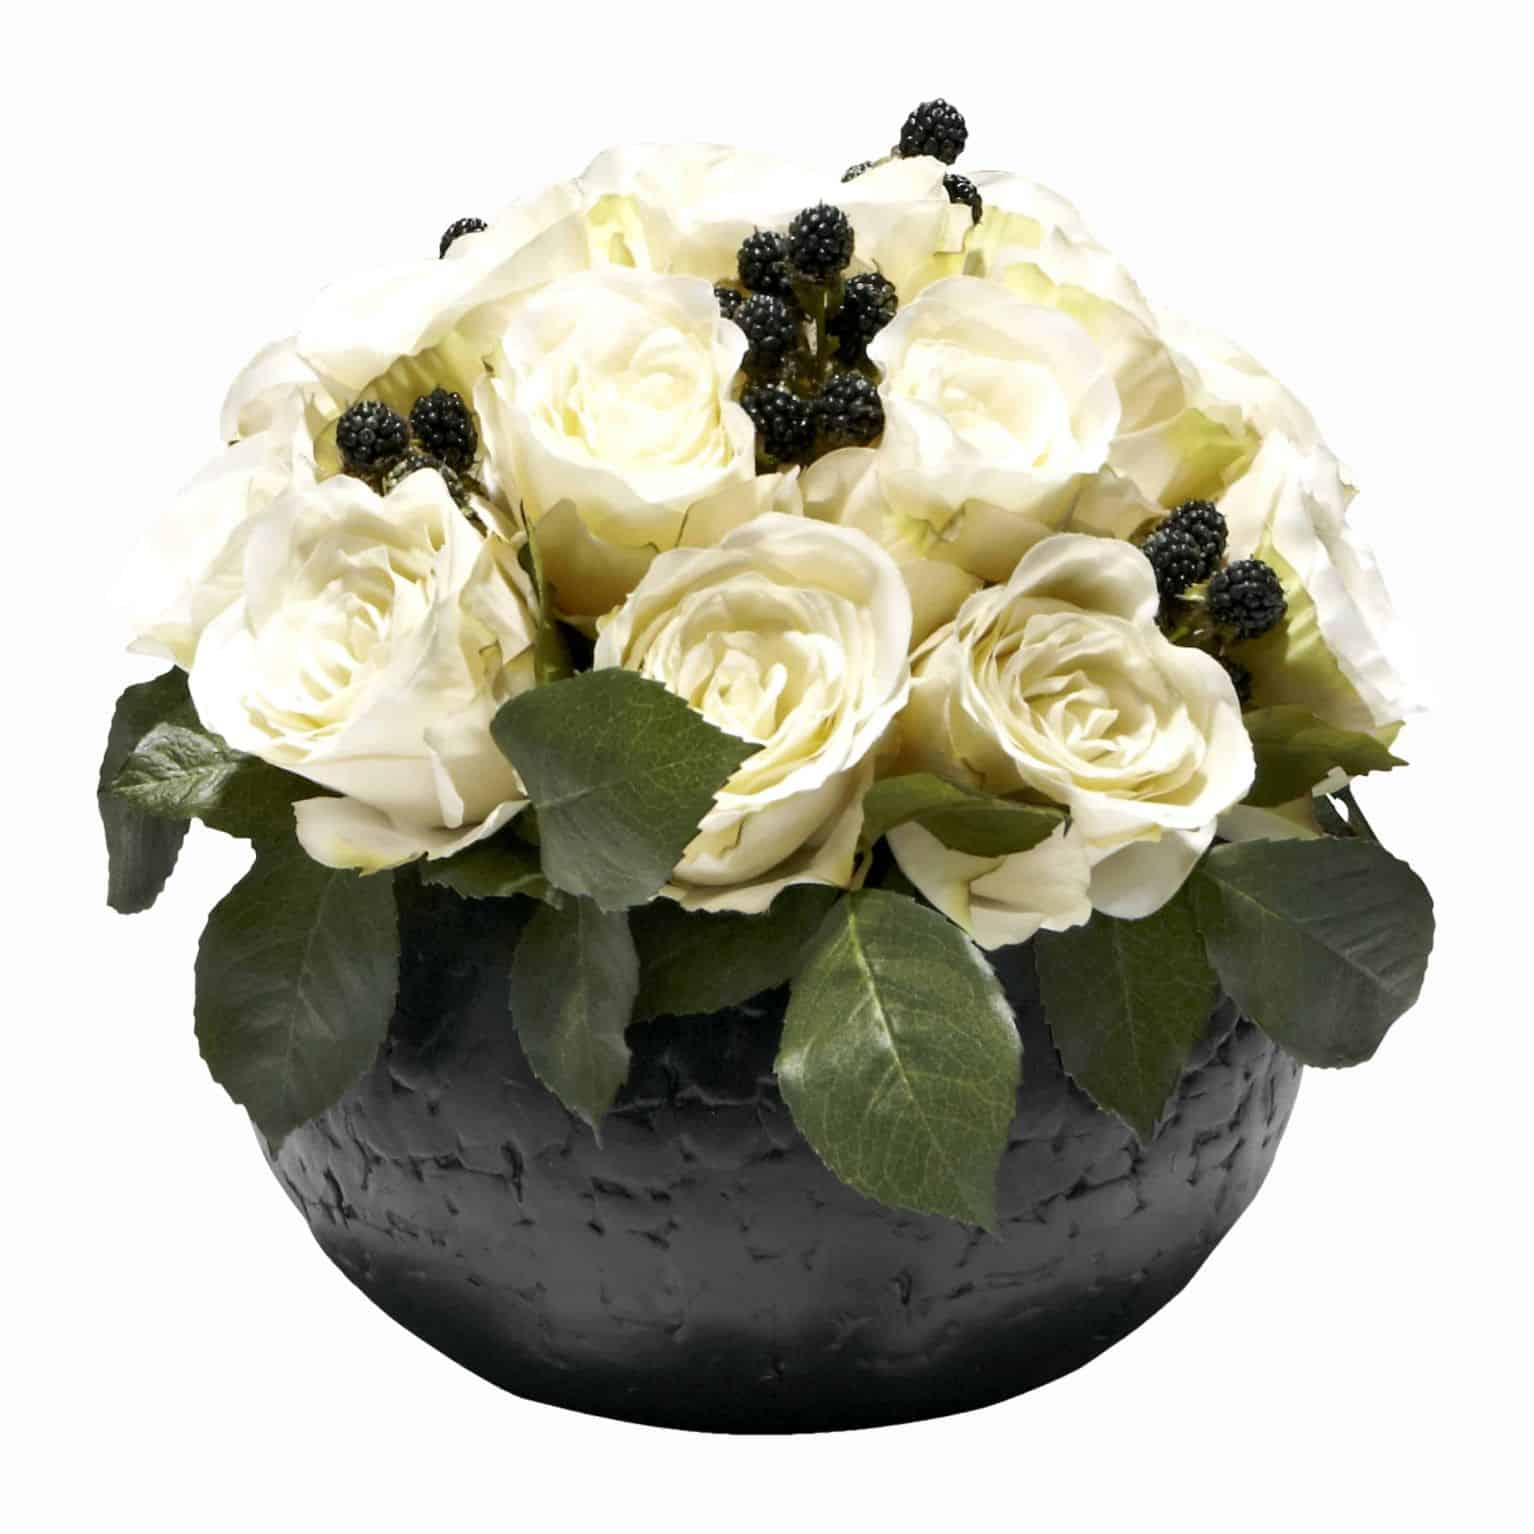 Shop for simple and chic artificial blackberries and elegant cream silk flower roses delicately arranged in a round etched back pot.